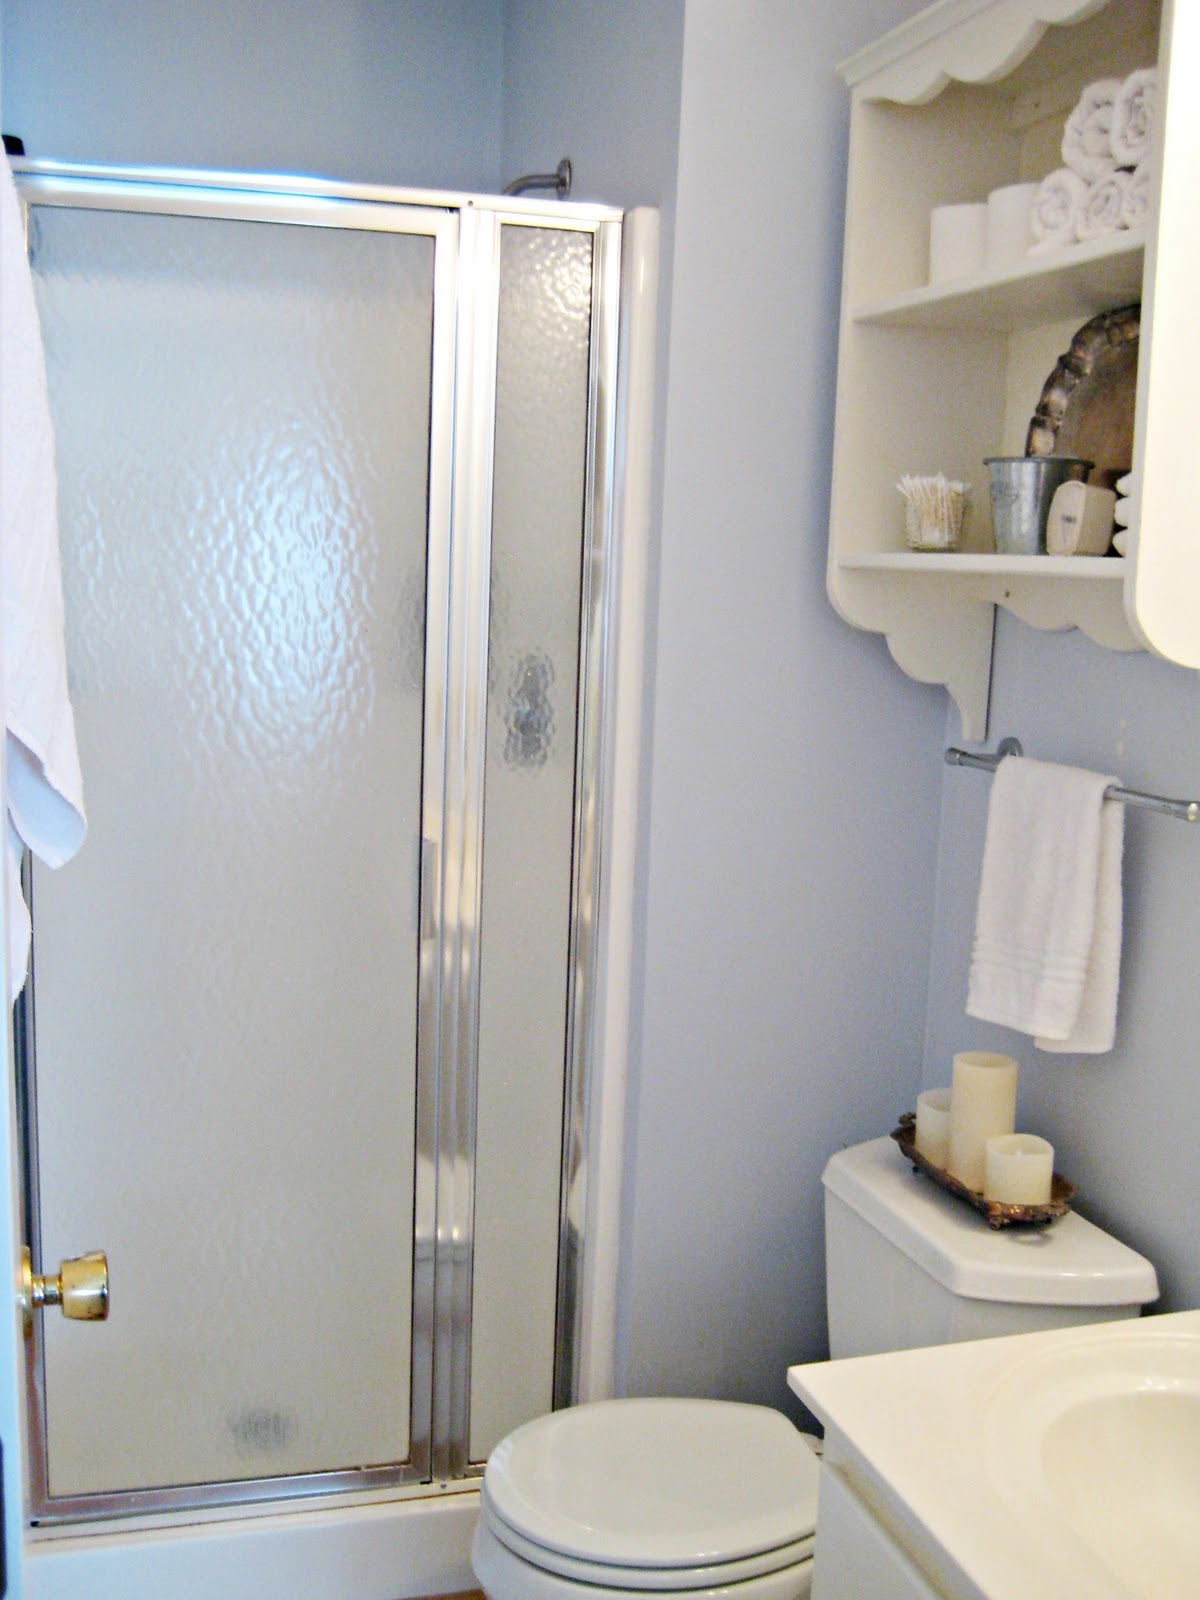 Cost To Add Small Bathroom To House: Happy At Home: Adding Storage To A Small Bathroom